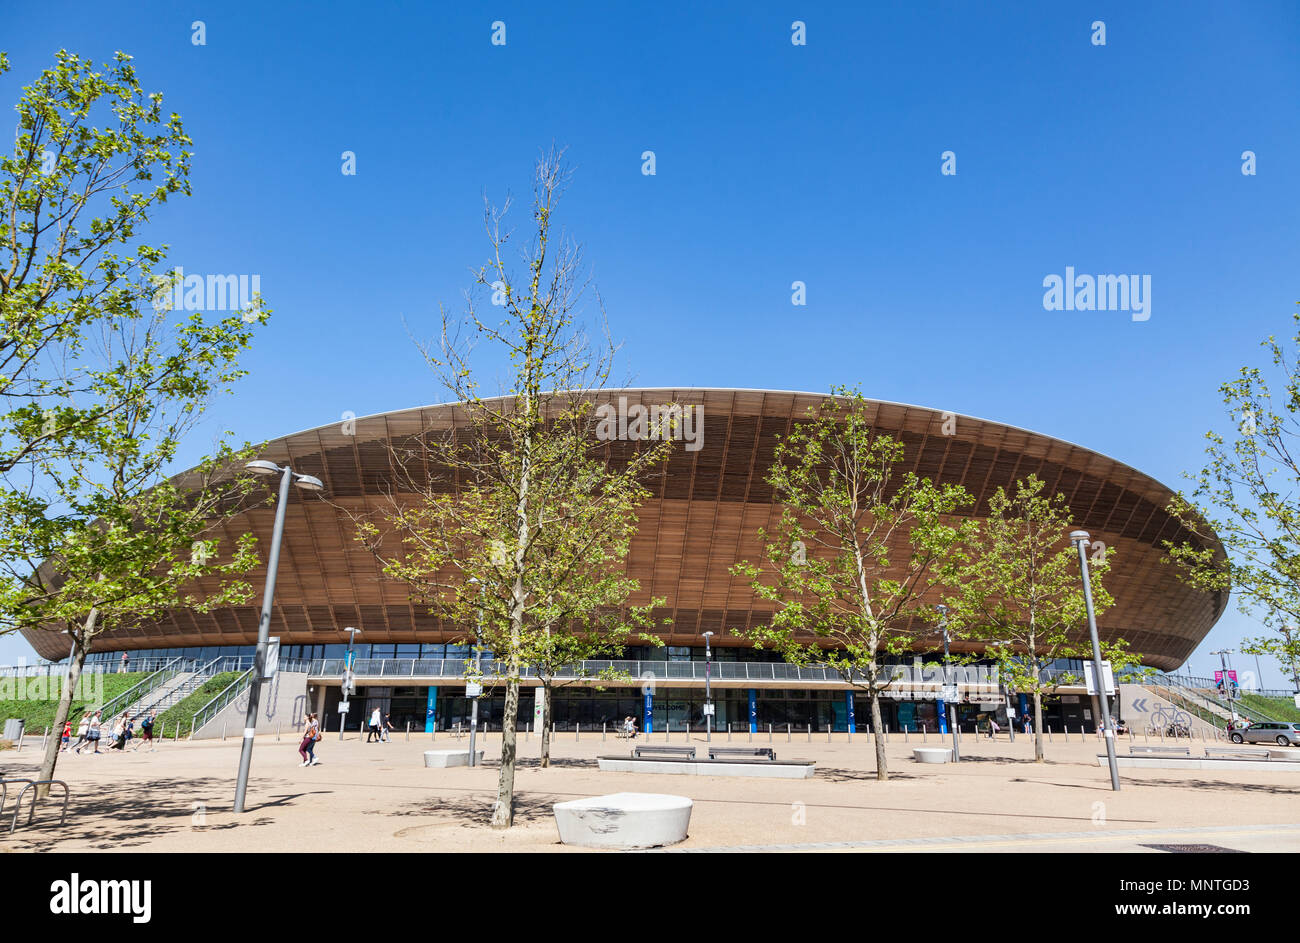 Lee Vally Velopark at the Queen Elizabeth Olympic park in London - Stock Image